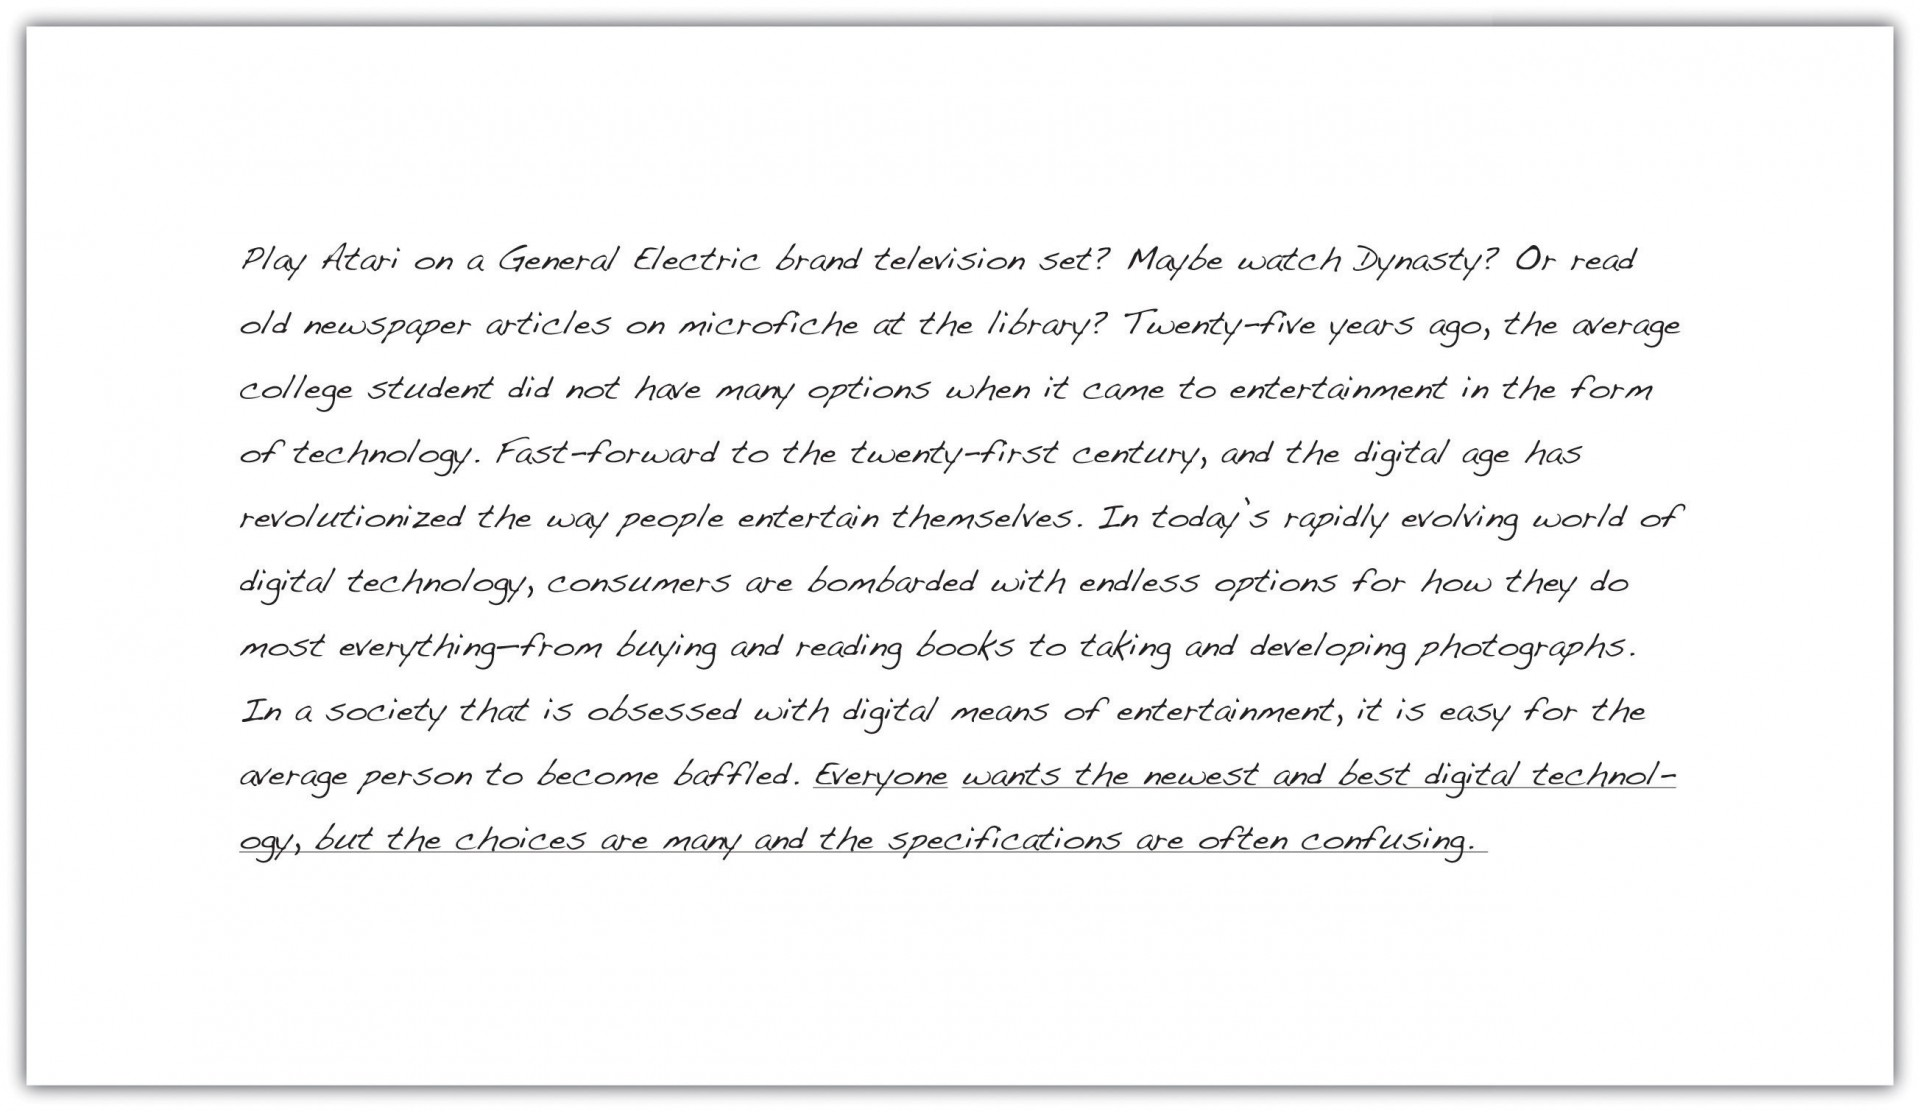 011 Ethical Dilemma Essay Example Unforgettable Cwv Euthanasia Conclusion Social Work 1920